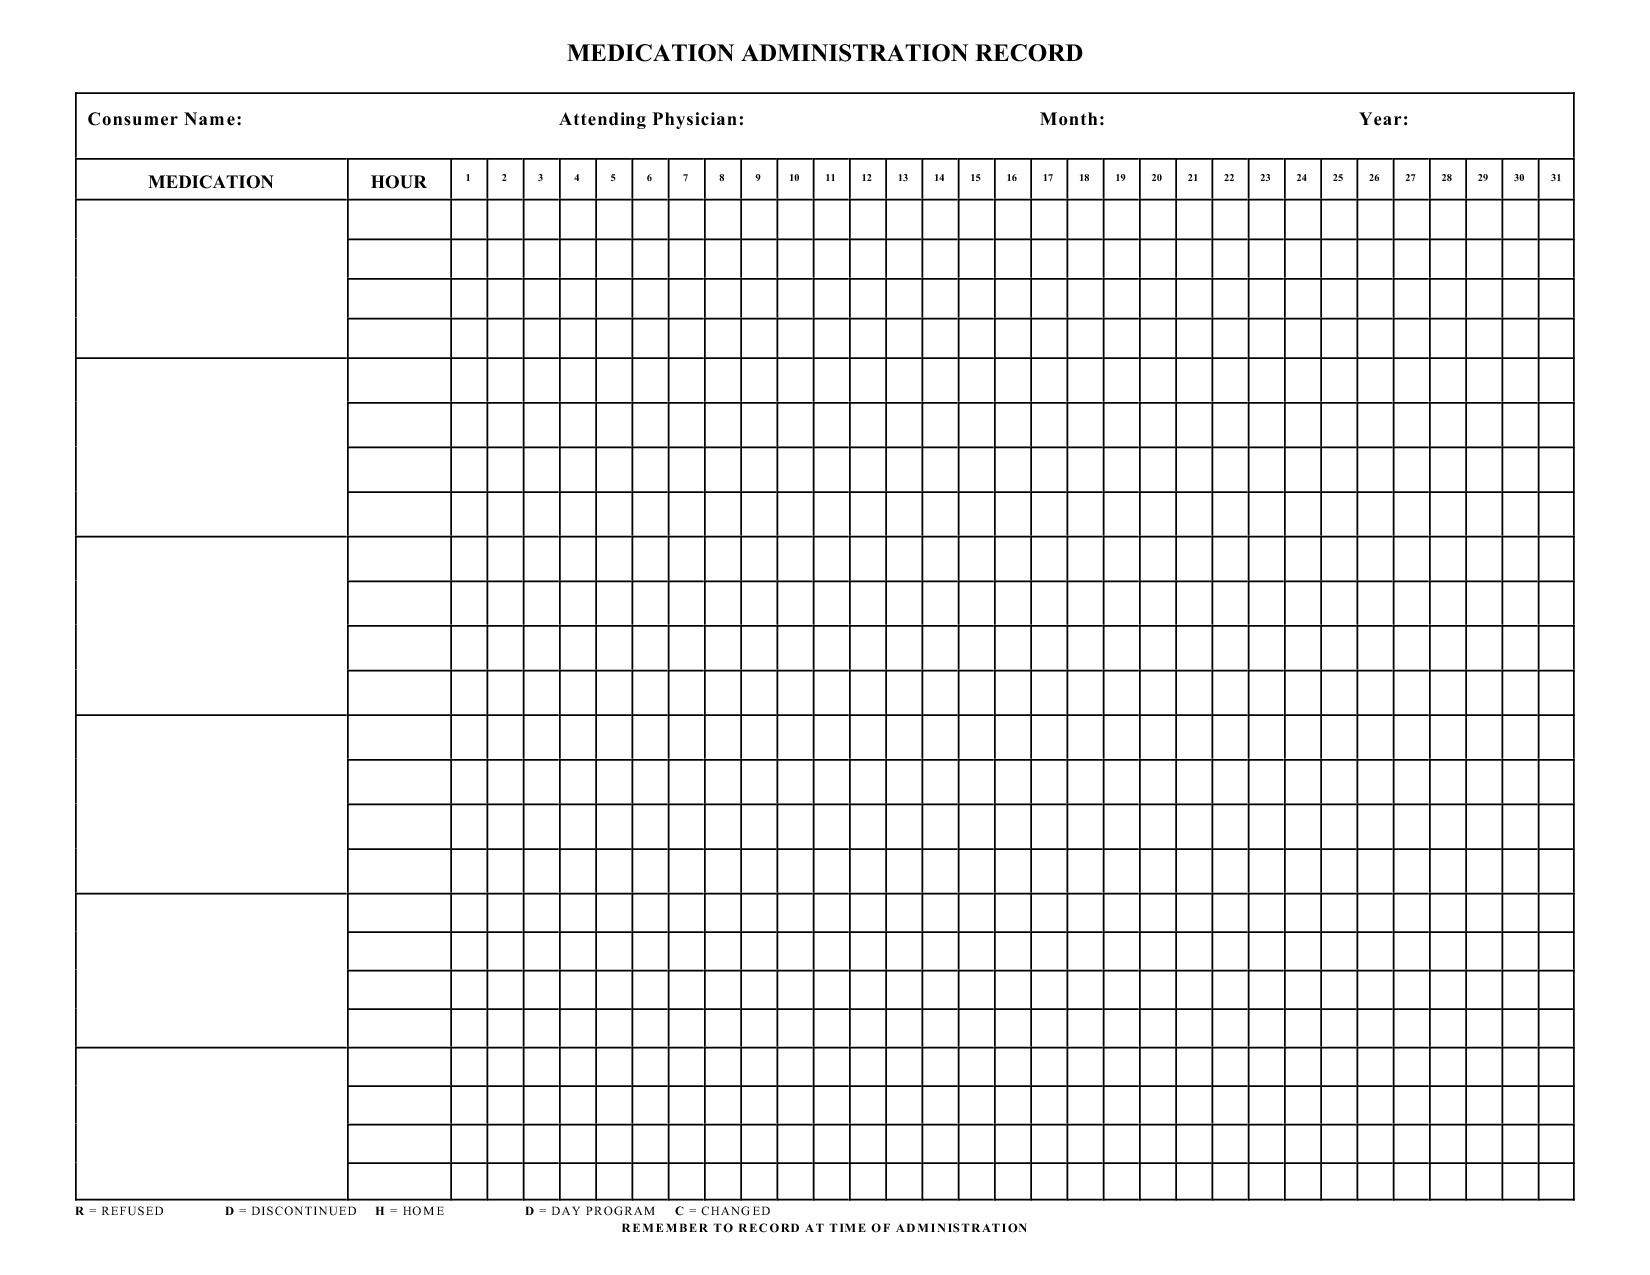 Medication Administration Record Template Excel Blank Medication Administration Record Template